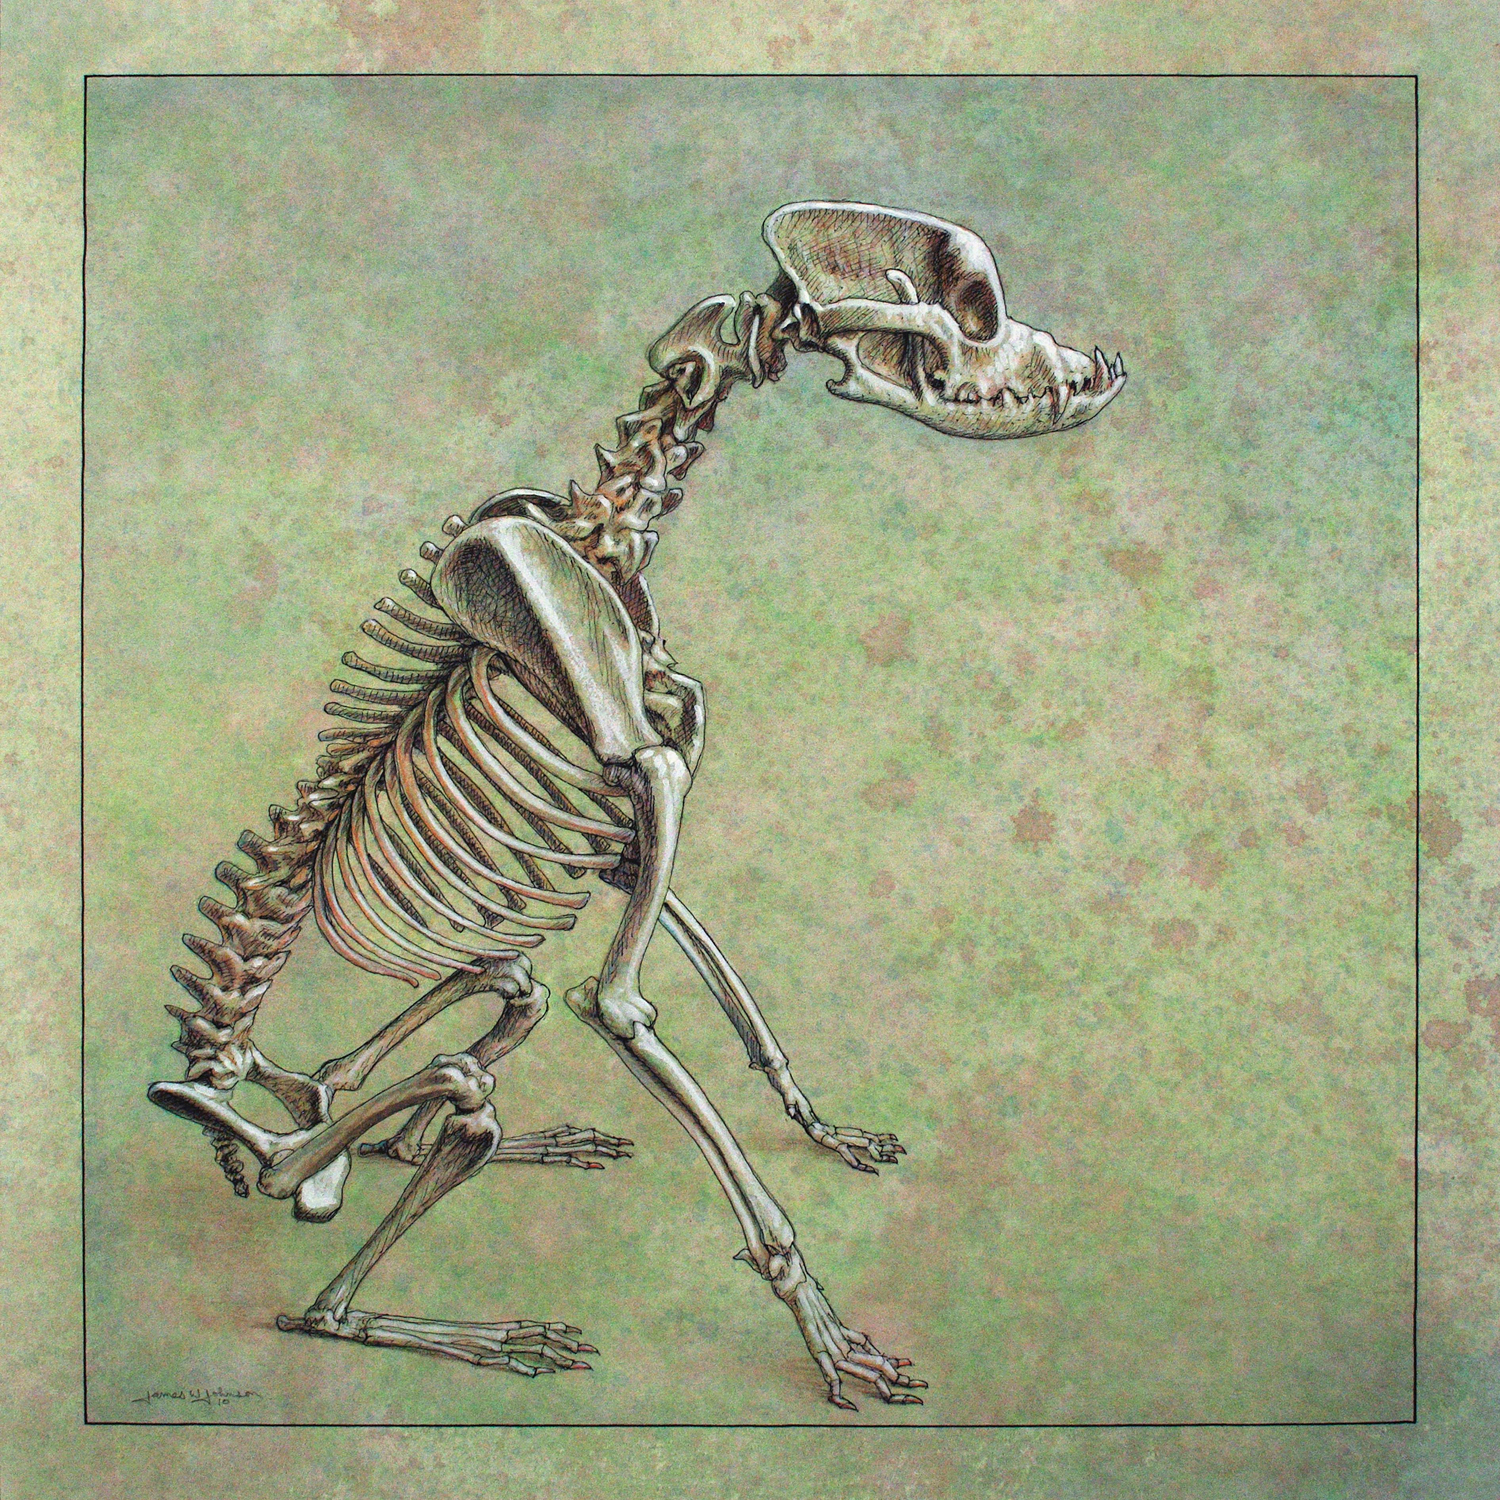 Profile of a dog skeleton sitting down over a green background